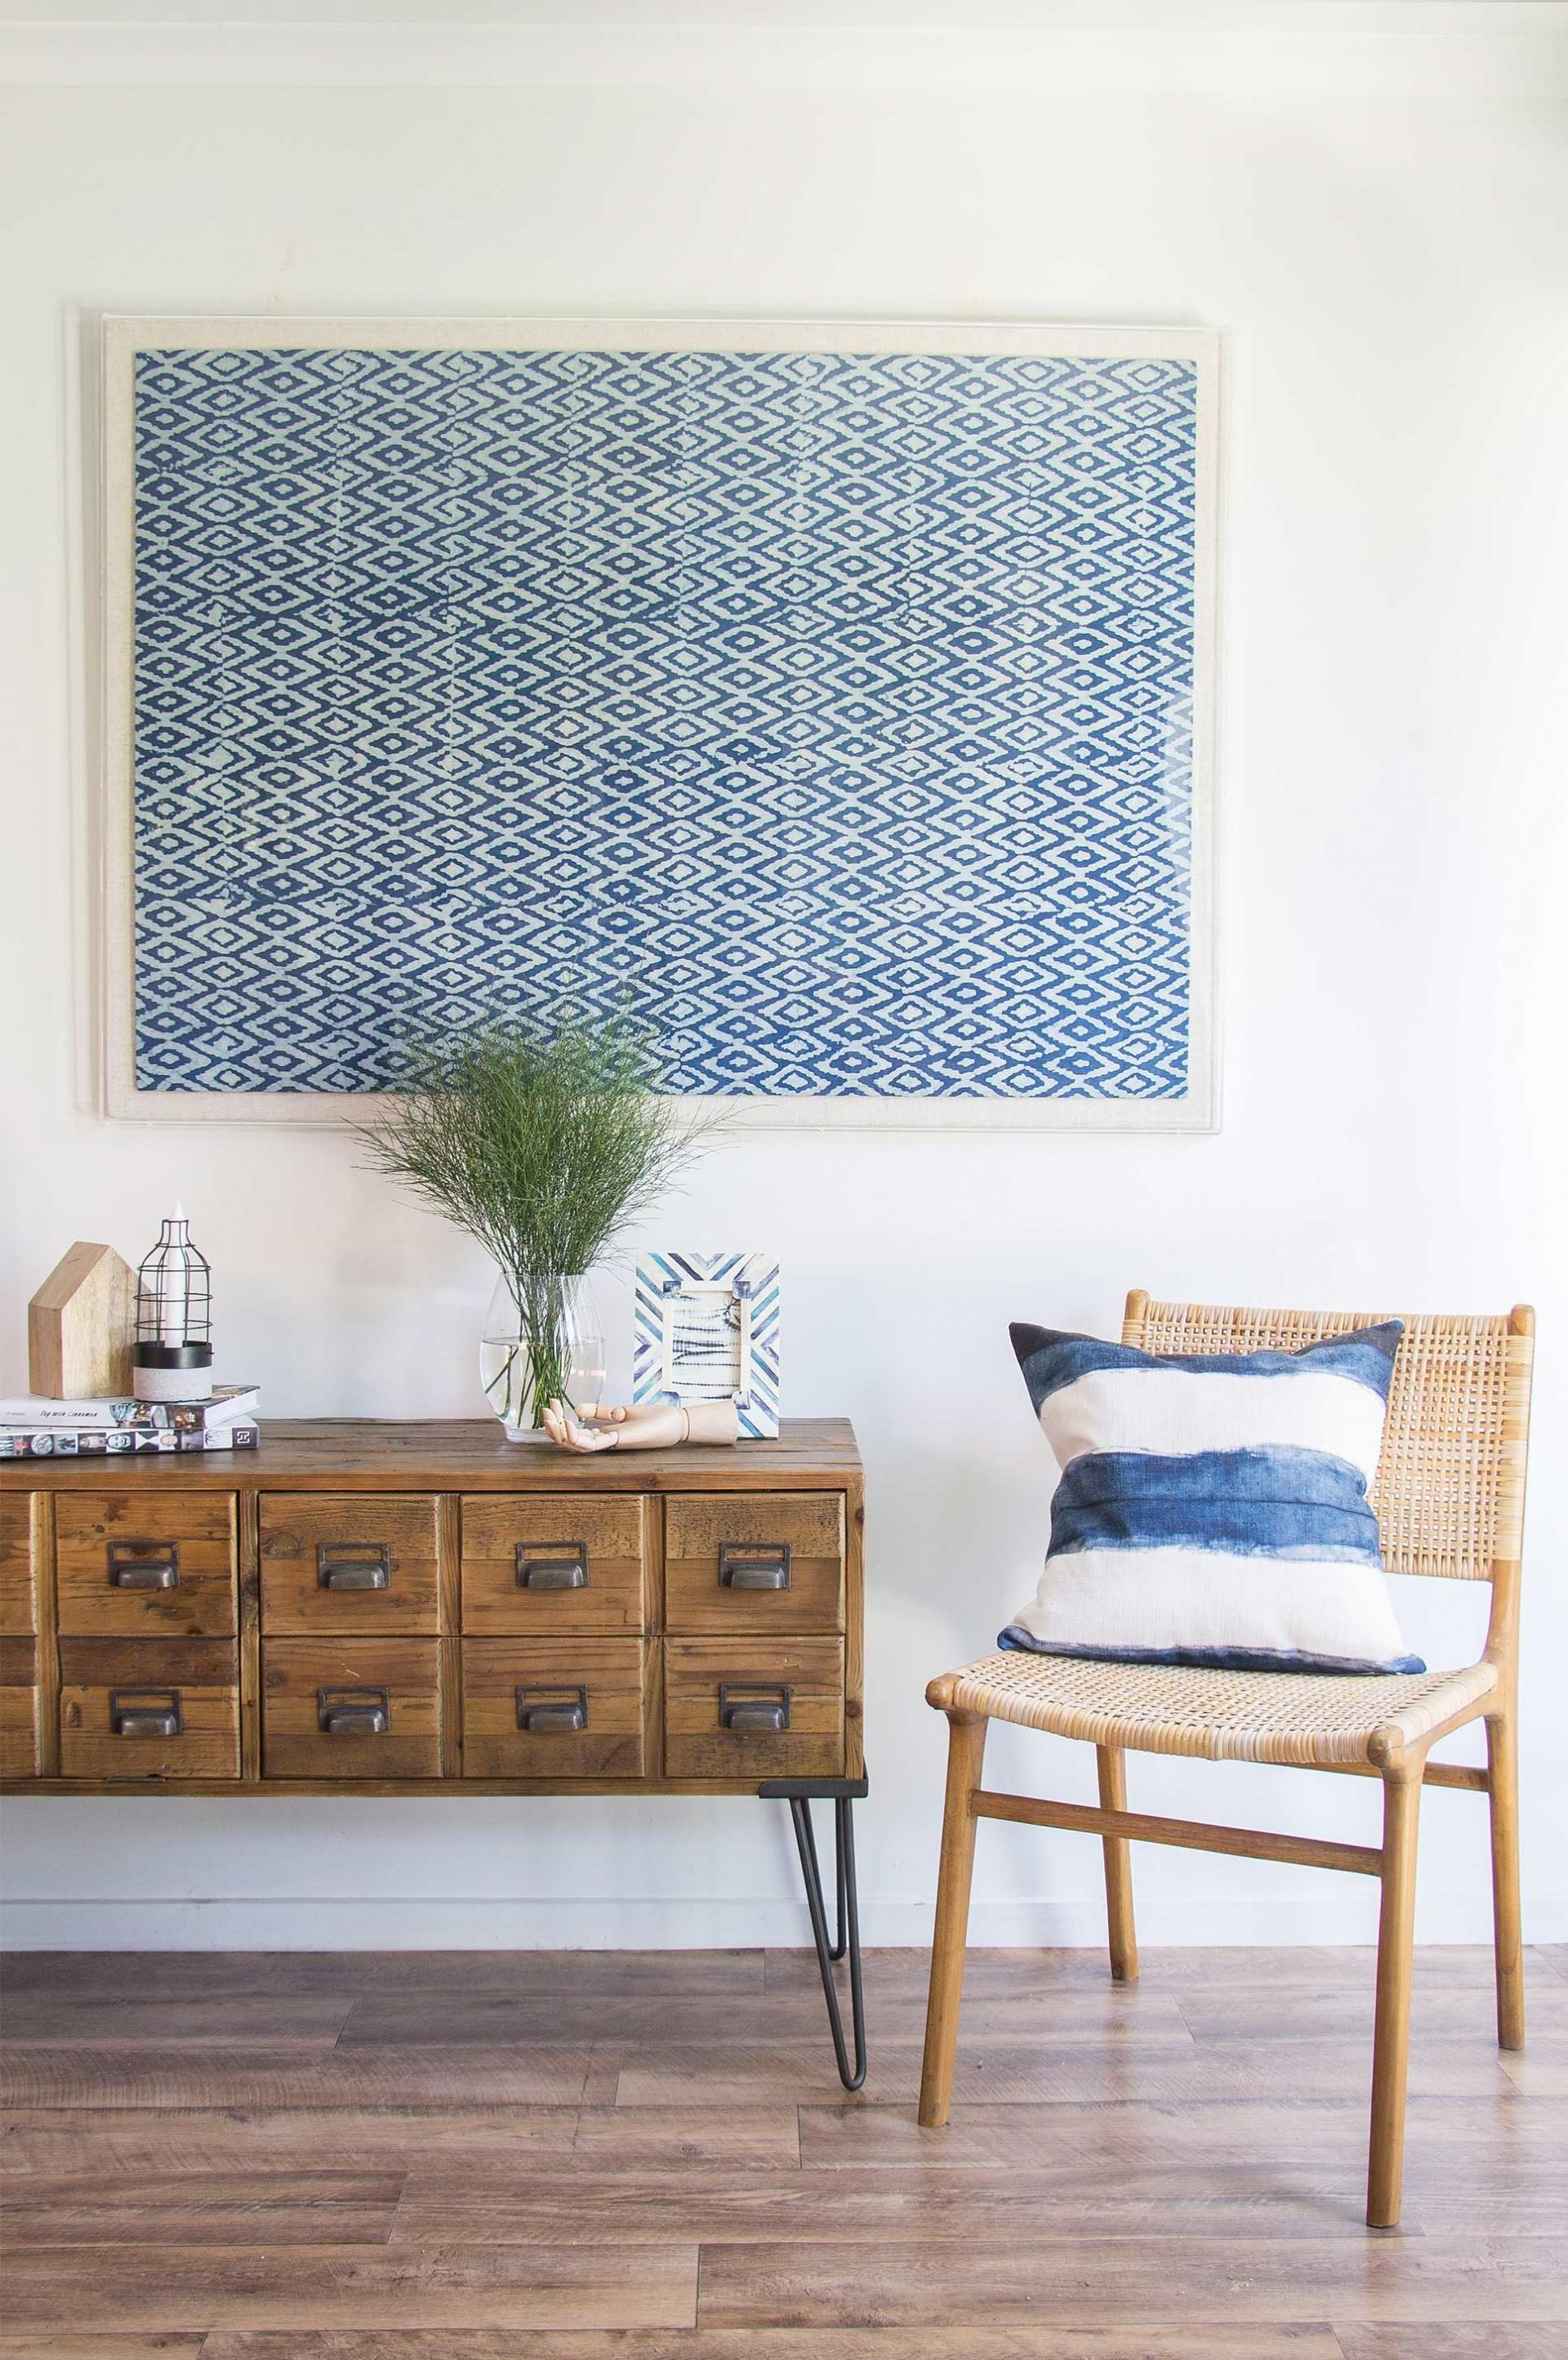 Loomologys collection of handmade textiles sourced from india and africa and framed in australia